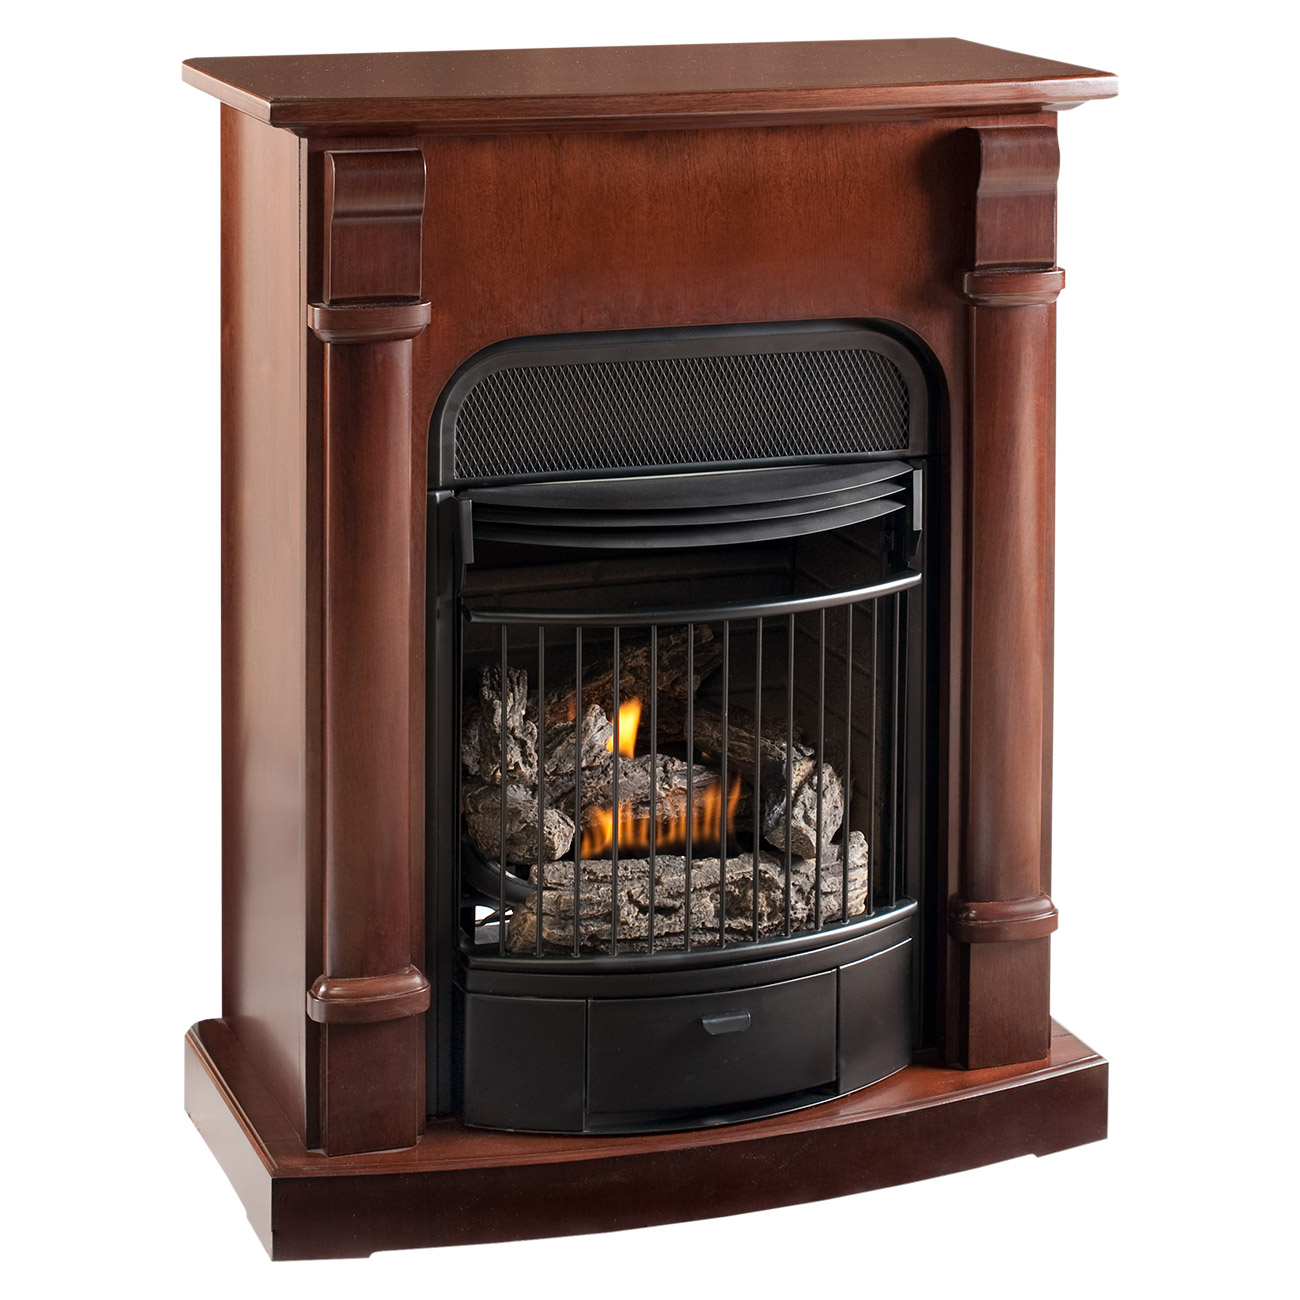 ProCom Heating Fireplace System Model EDP200T2-JA